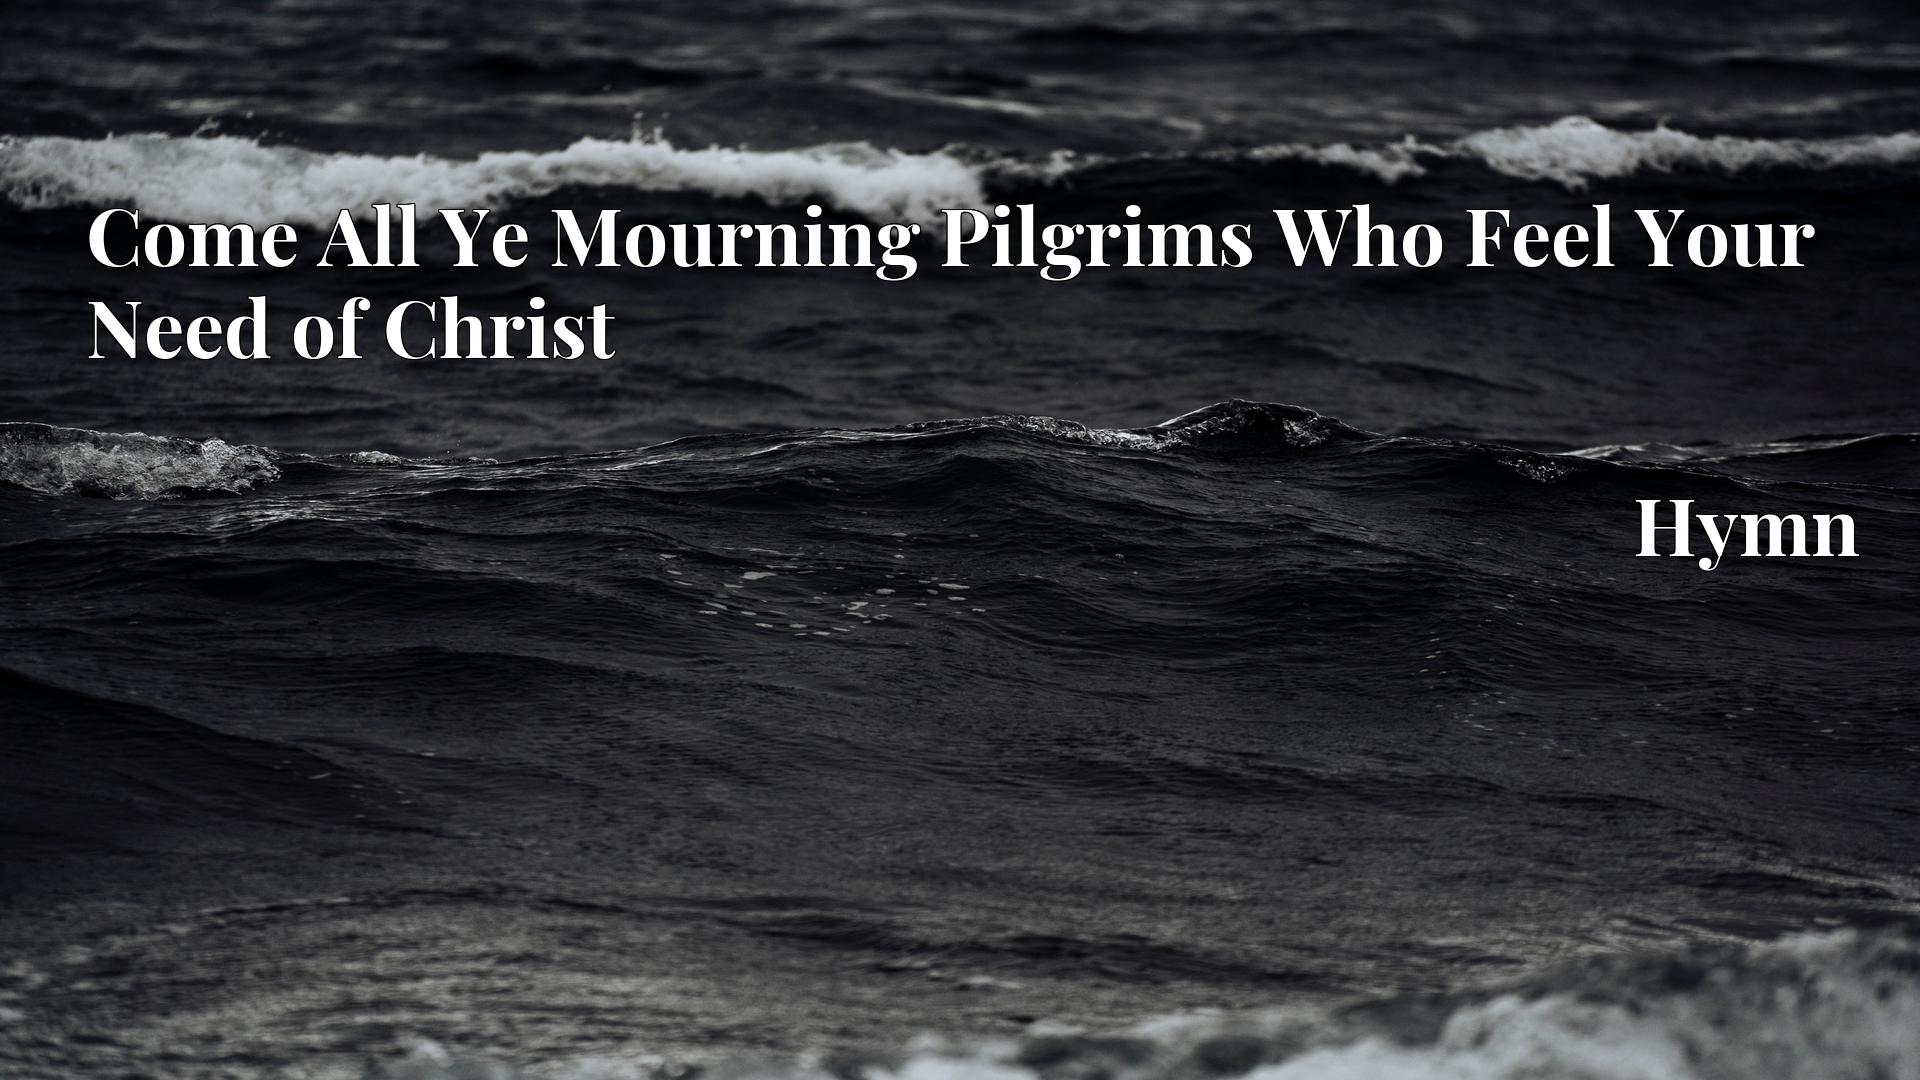 Come All Ye Mourning Pilgrims Who Feel Your Need of Christ - Hymn